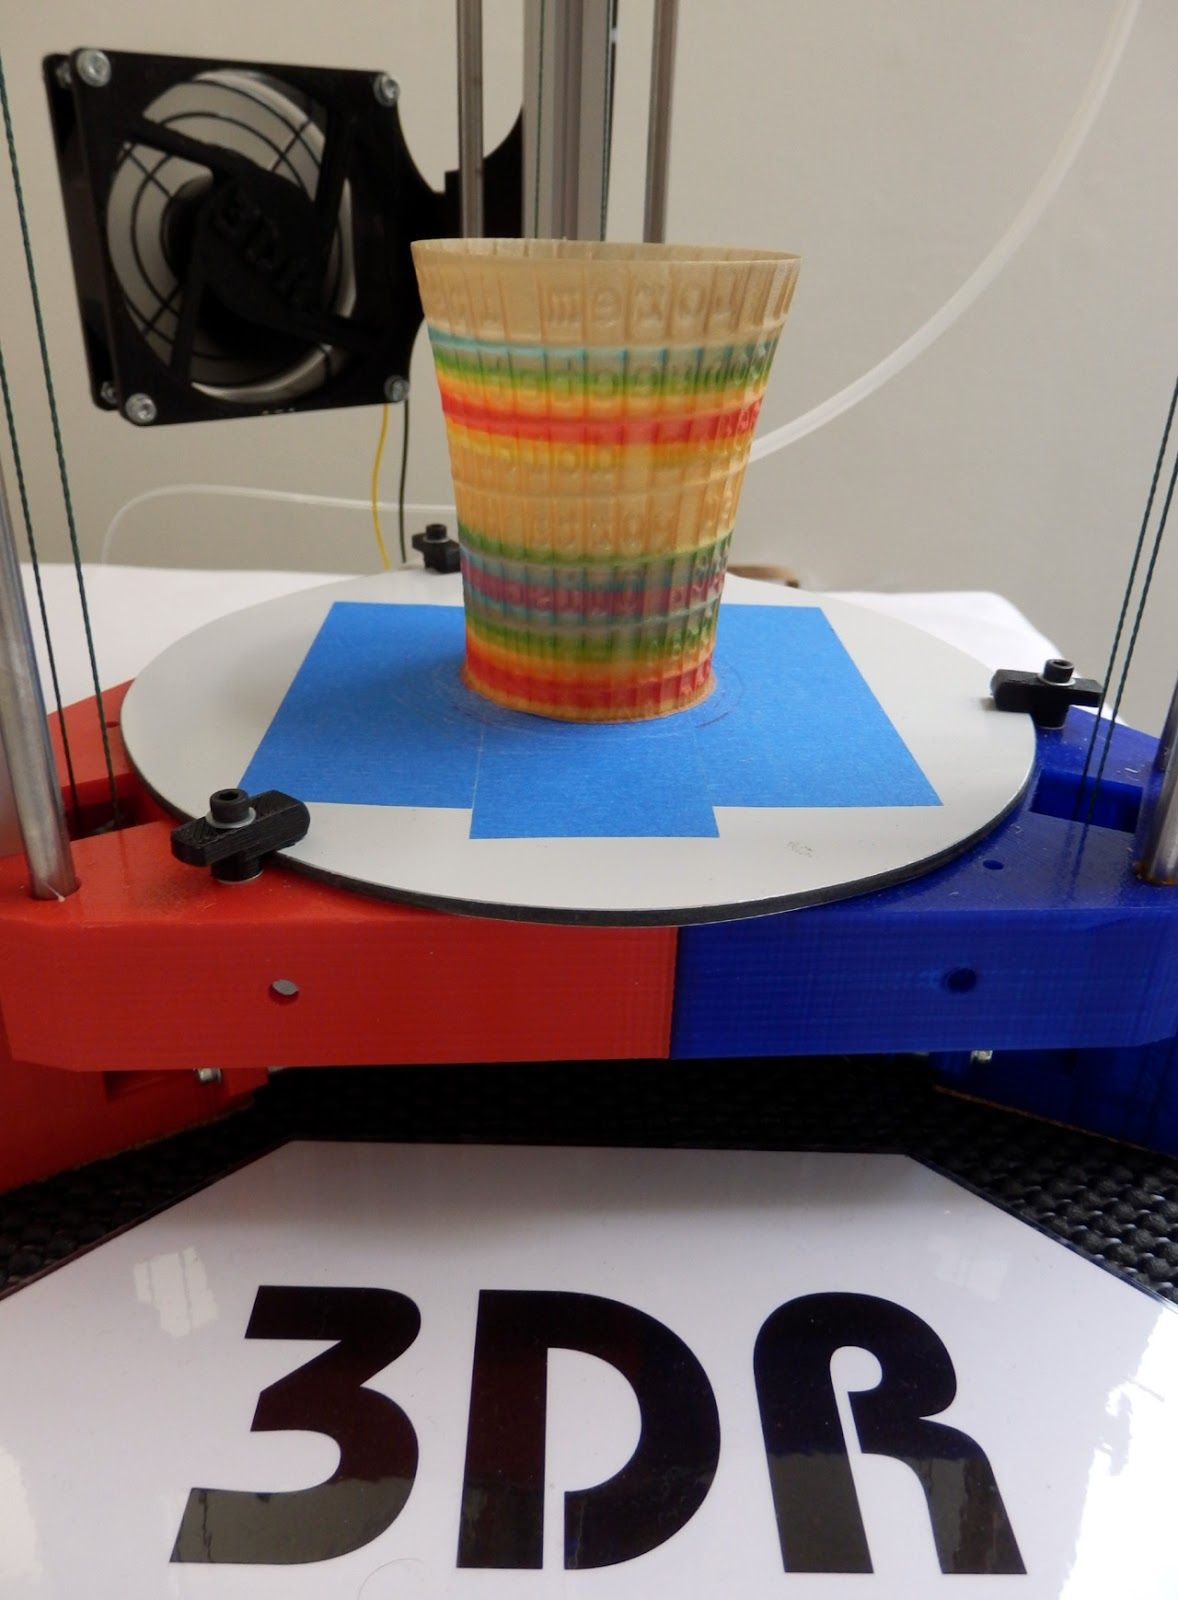 Reprap development and further adventures in DIY 3D printing  3DR